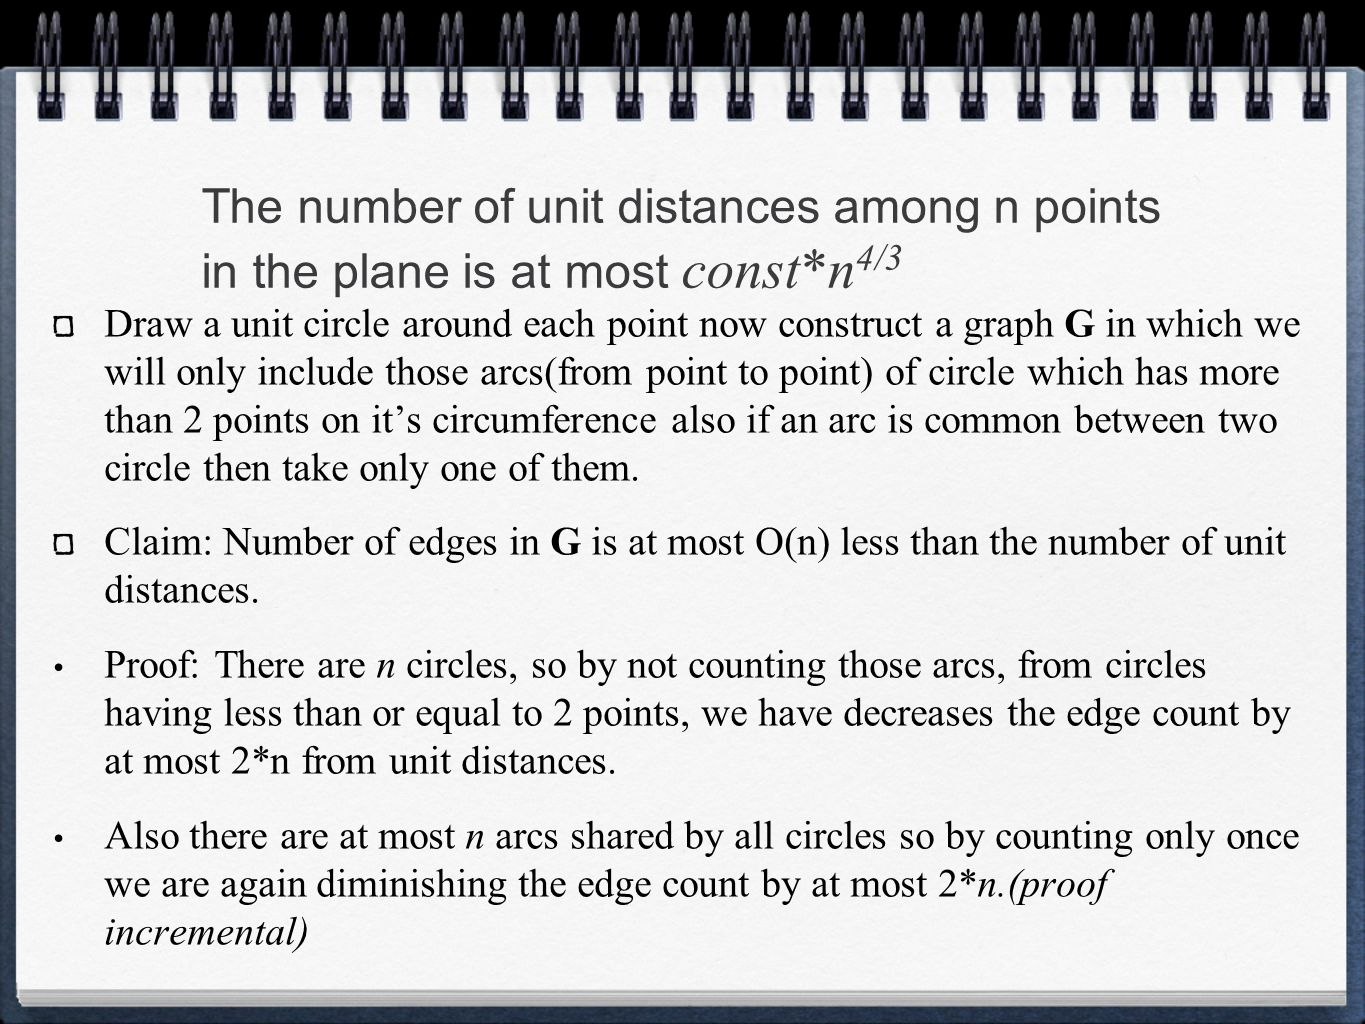 The number of unit distances among n points in the plane is at most const*n 4/3 Draw a unit circle around each point now construct a graph G in which we will only include those arcs(from point to point) of circle which has more than 2 points on it's circumference also if an arc is common between two circle then take only one of them.